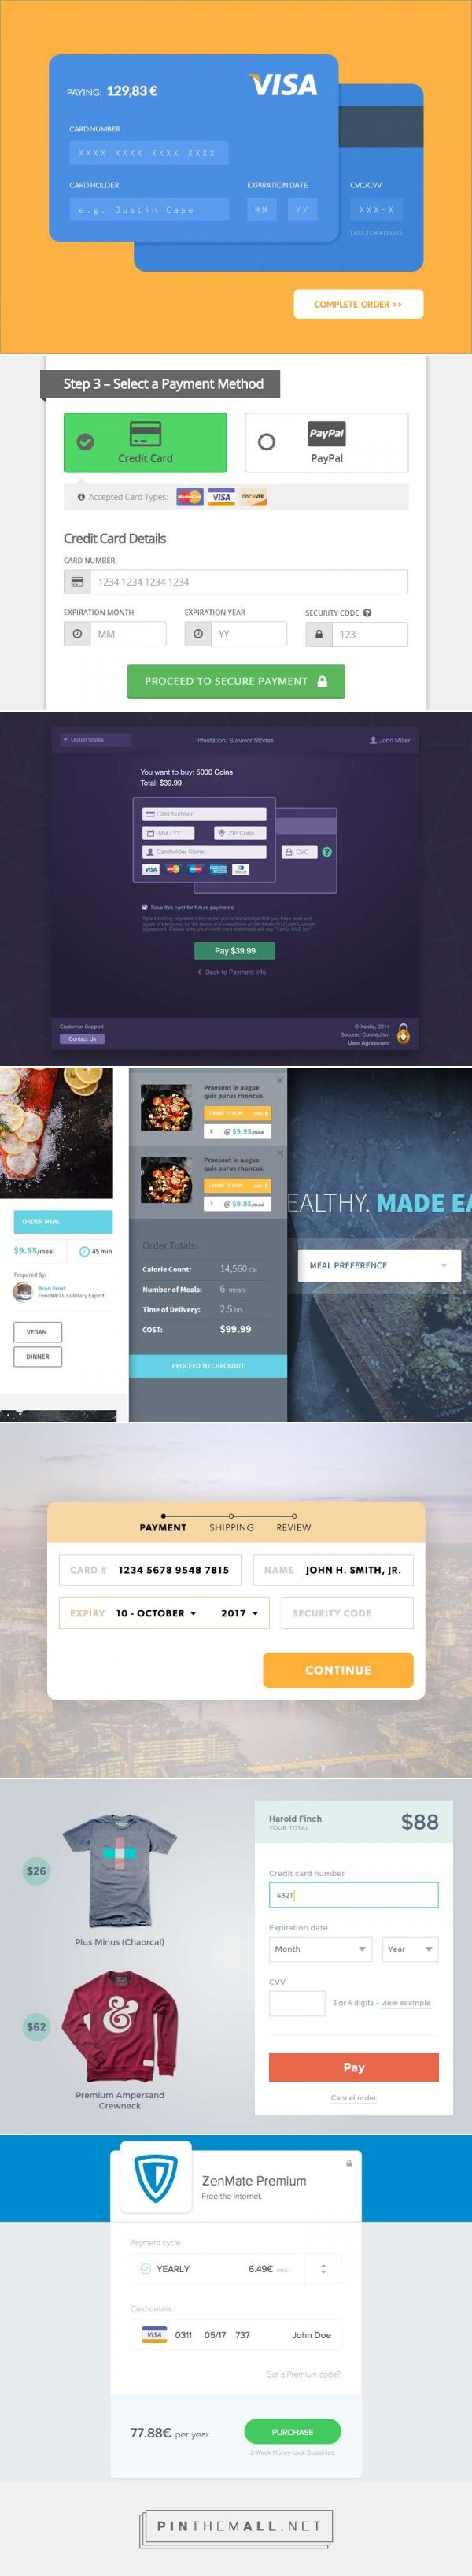 Designing Credit Card Payment Forms - created via http://pinthemall.net